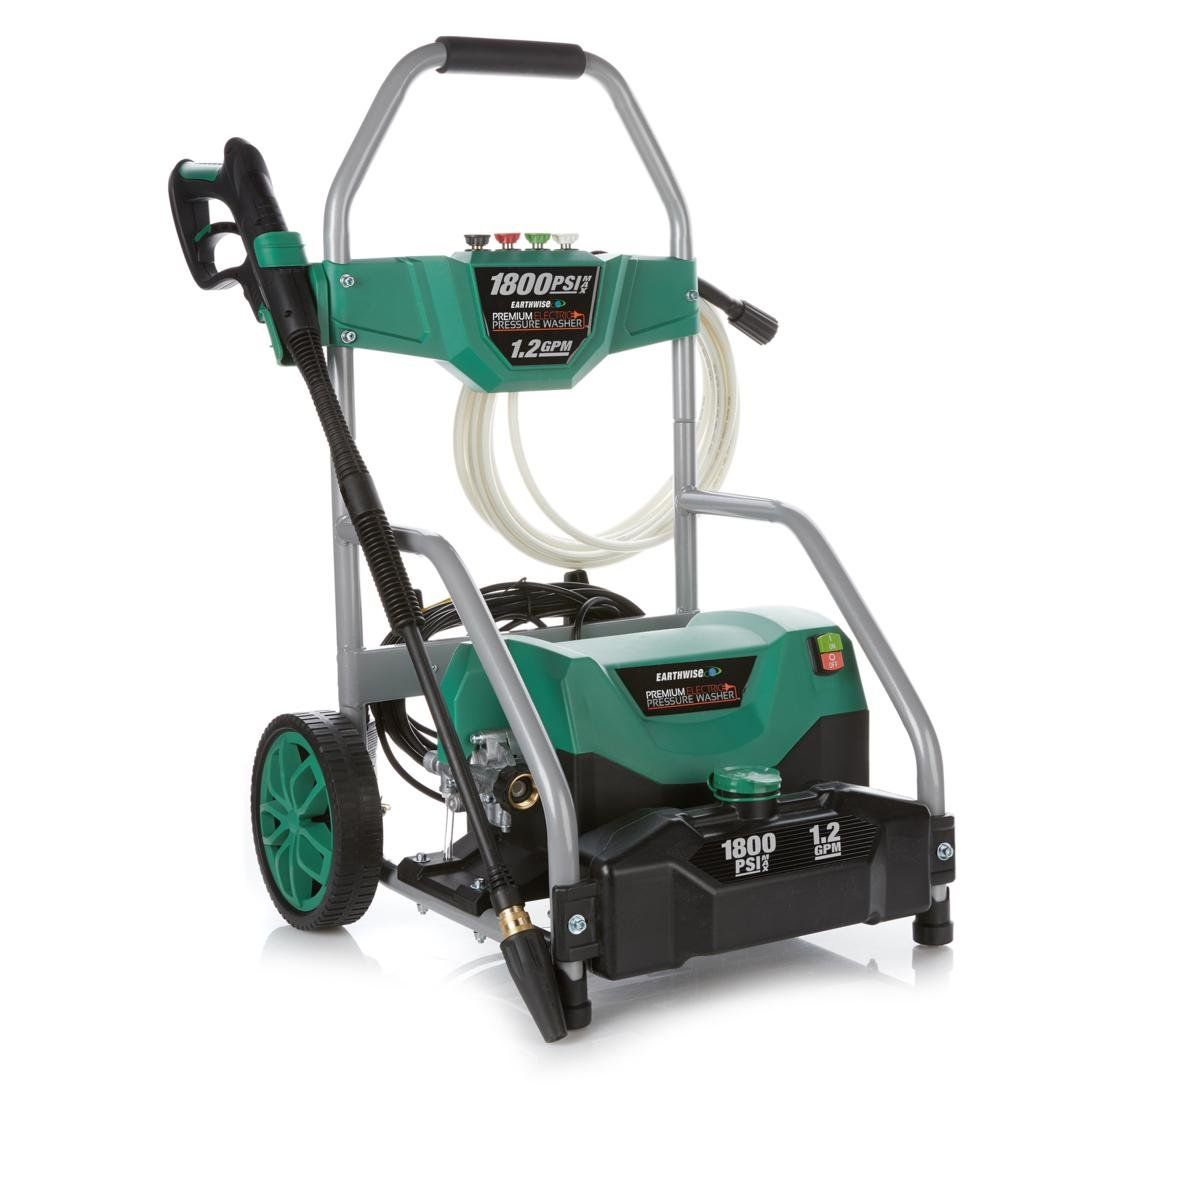 Earthwise 13 Amp Pressure Washer Electric Pressure Washer Pressure Washer Earthwise